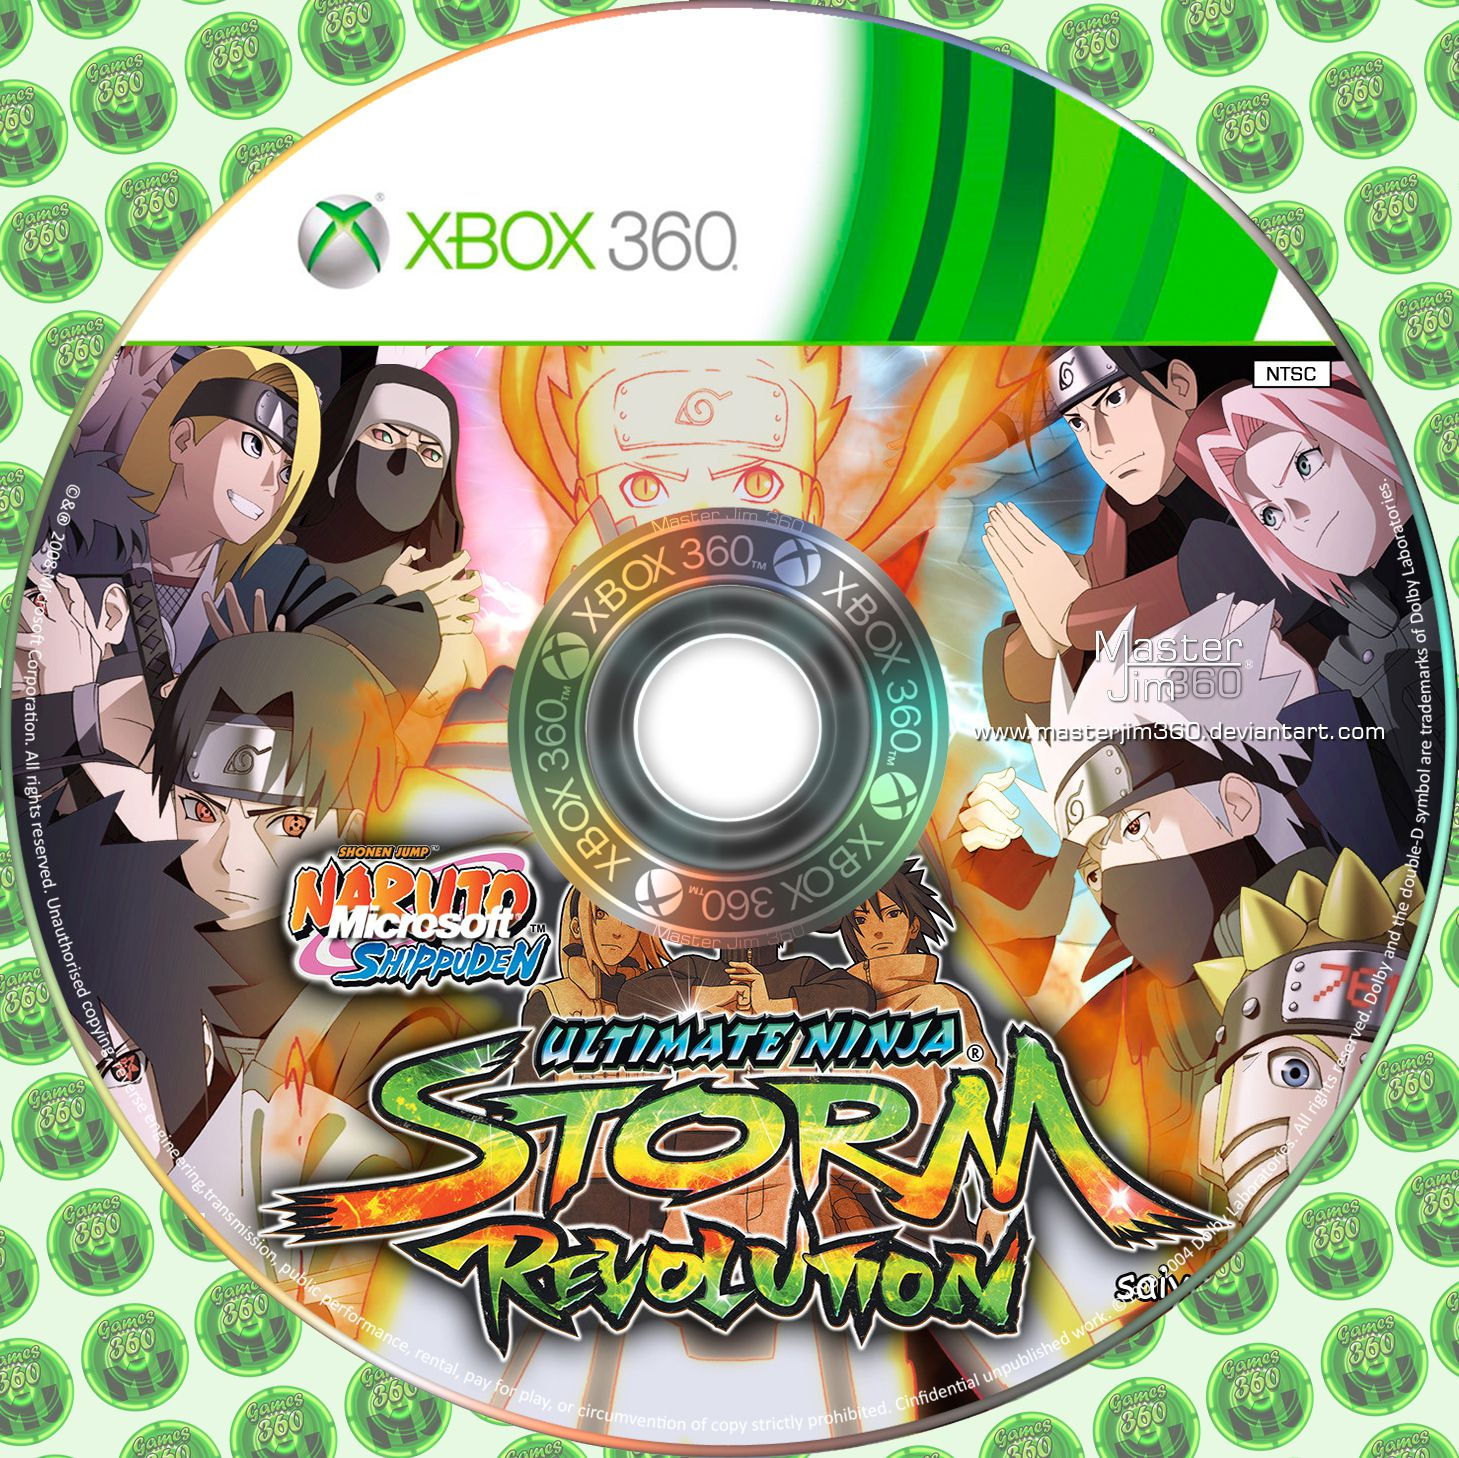 Label Naruto Shippuden Ultimate Ninja Storm Revolution Xbox 360